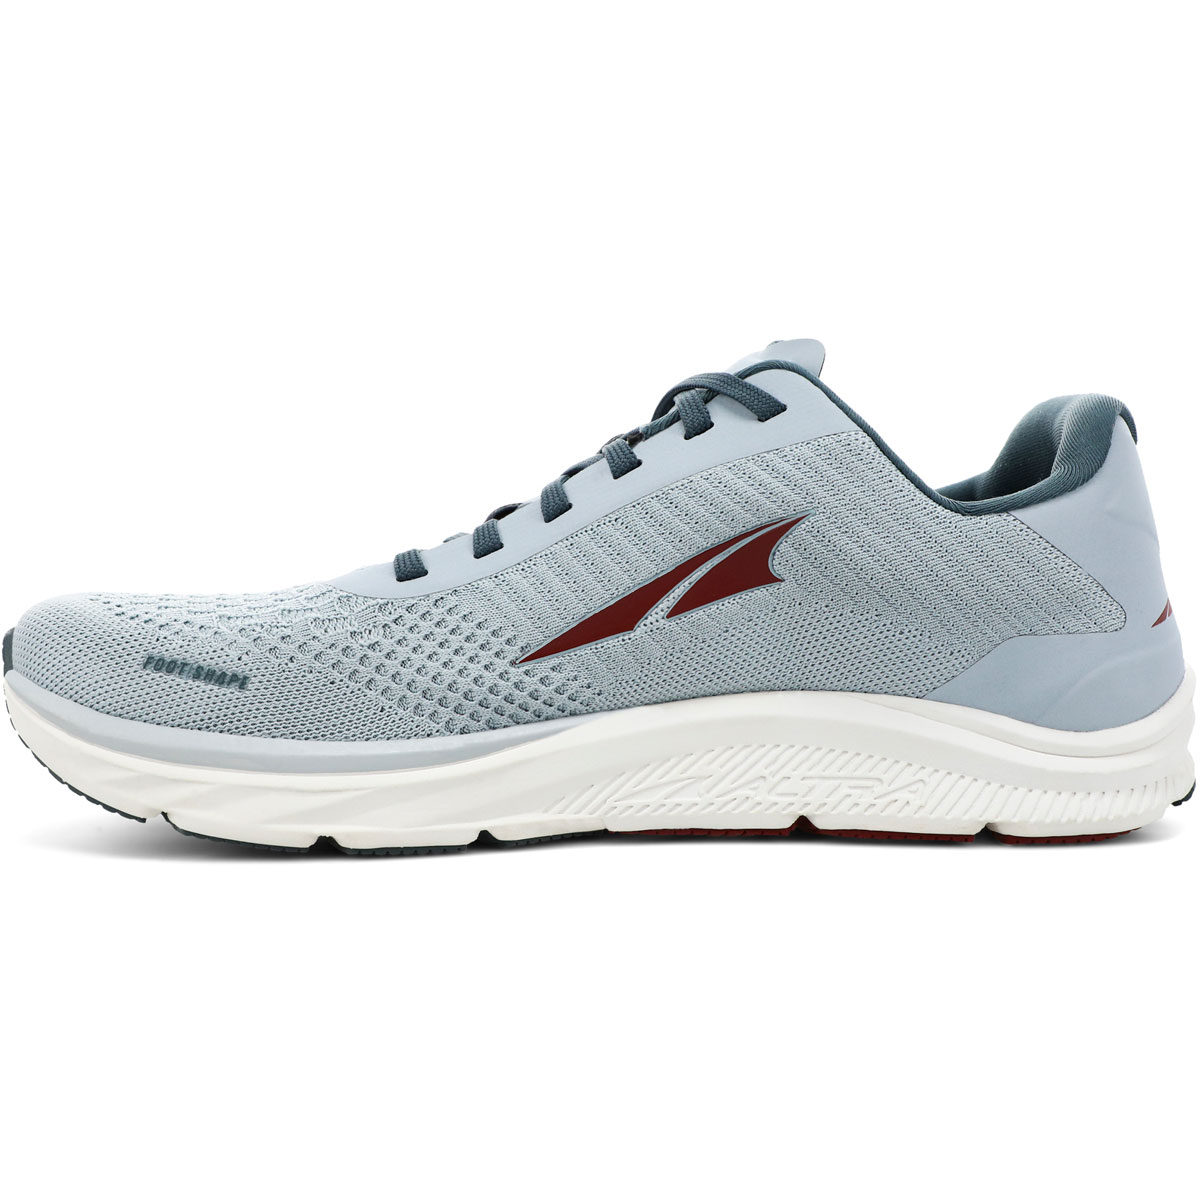 Men's Altra Torin 4.5 Plush Running Shoe - Color: Light Gray/Red - Size: 7 - Width: Regular, Light Gray/Red, large, image 2